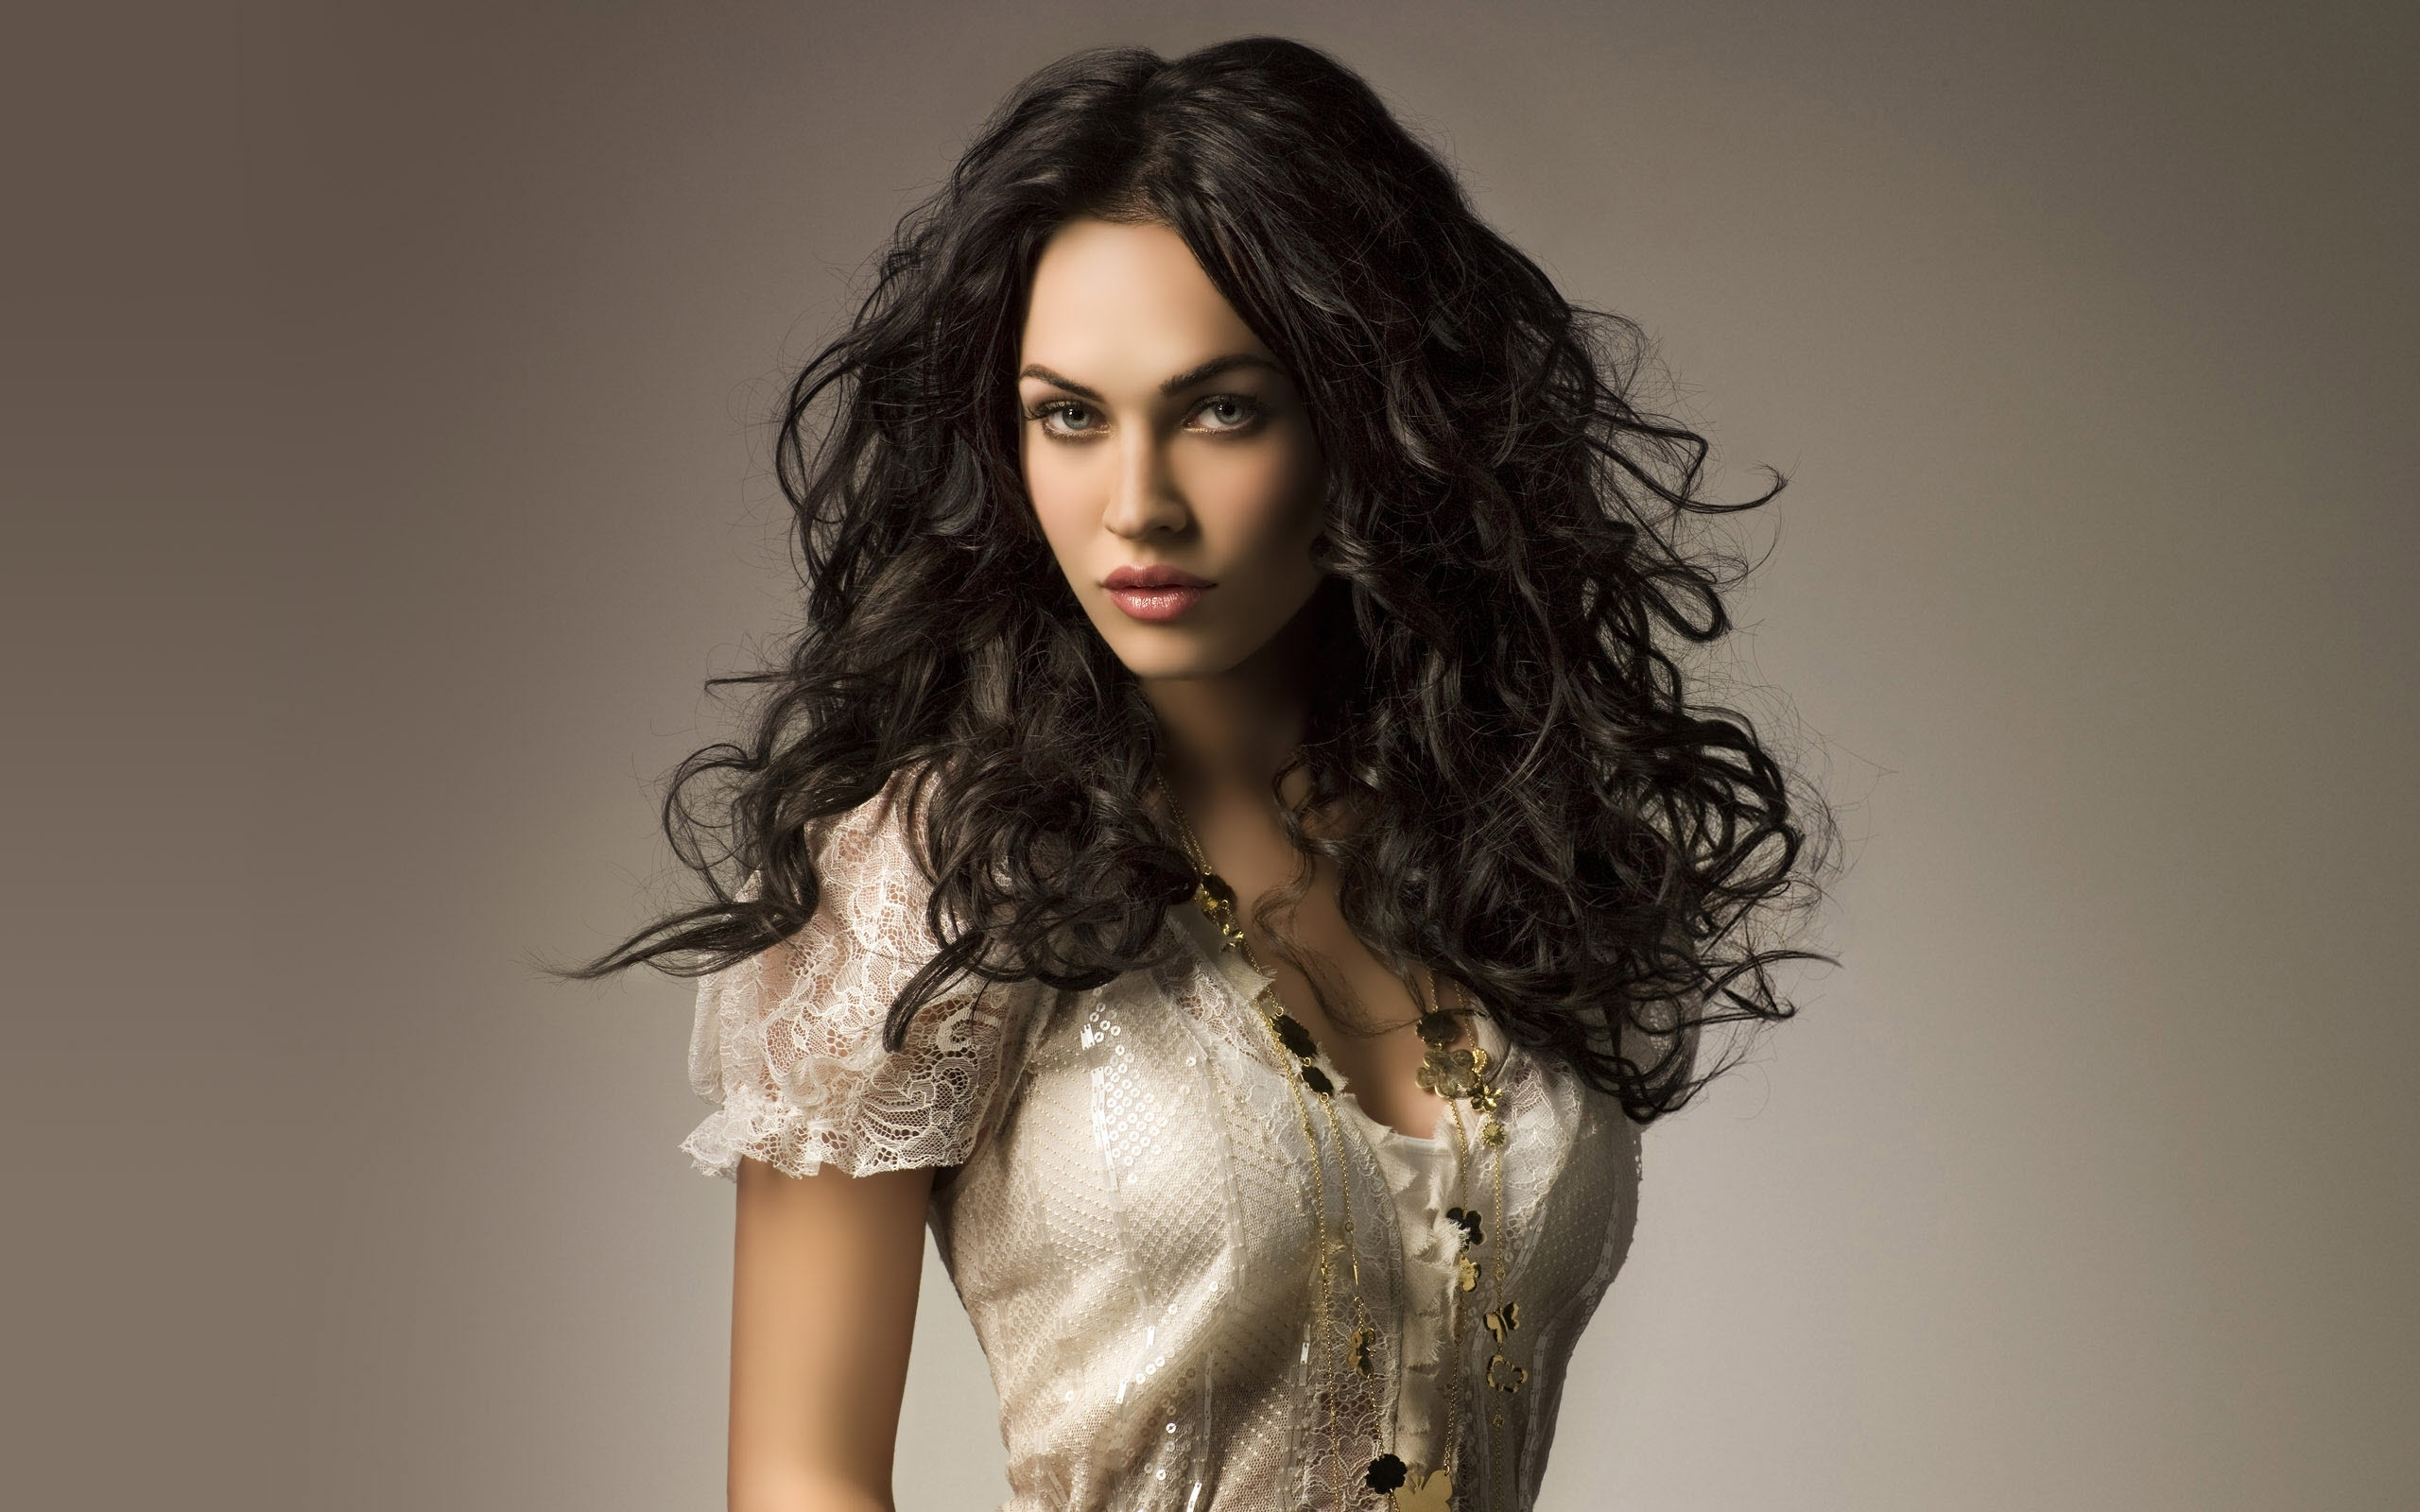 47294 download wallpaper People, Megan Fox, Girls screensavers and pictures for free